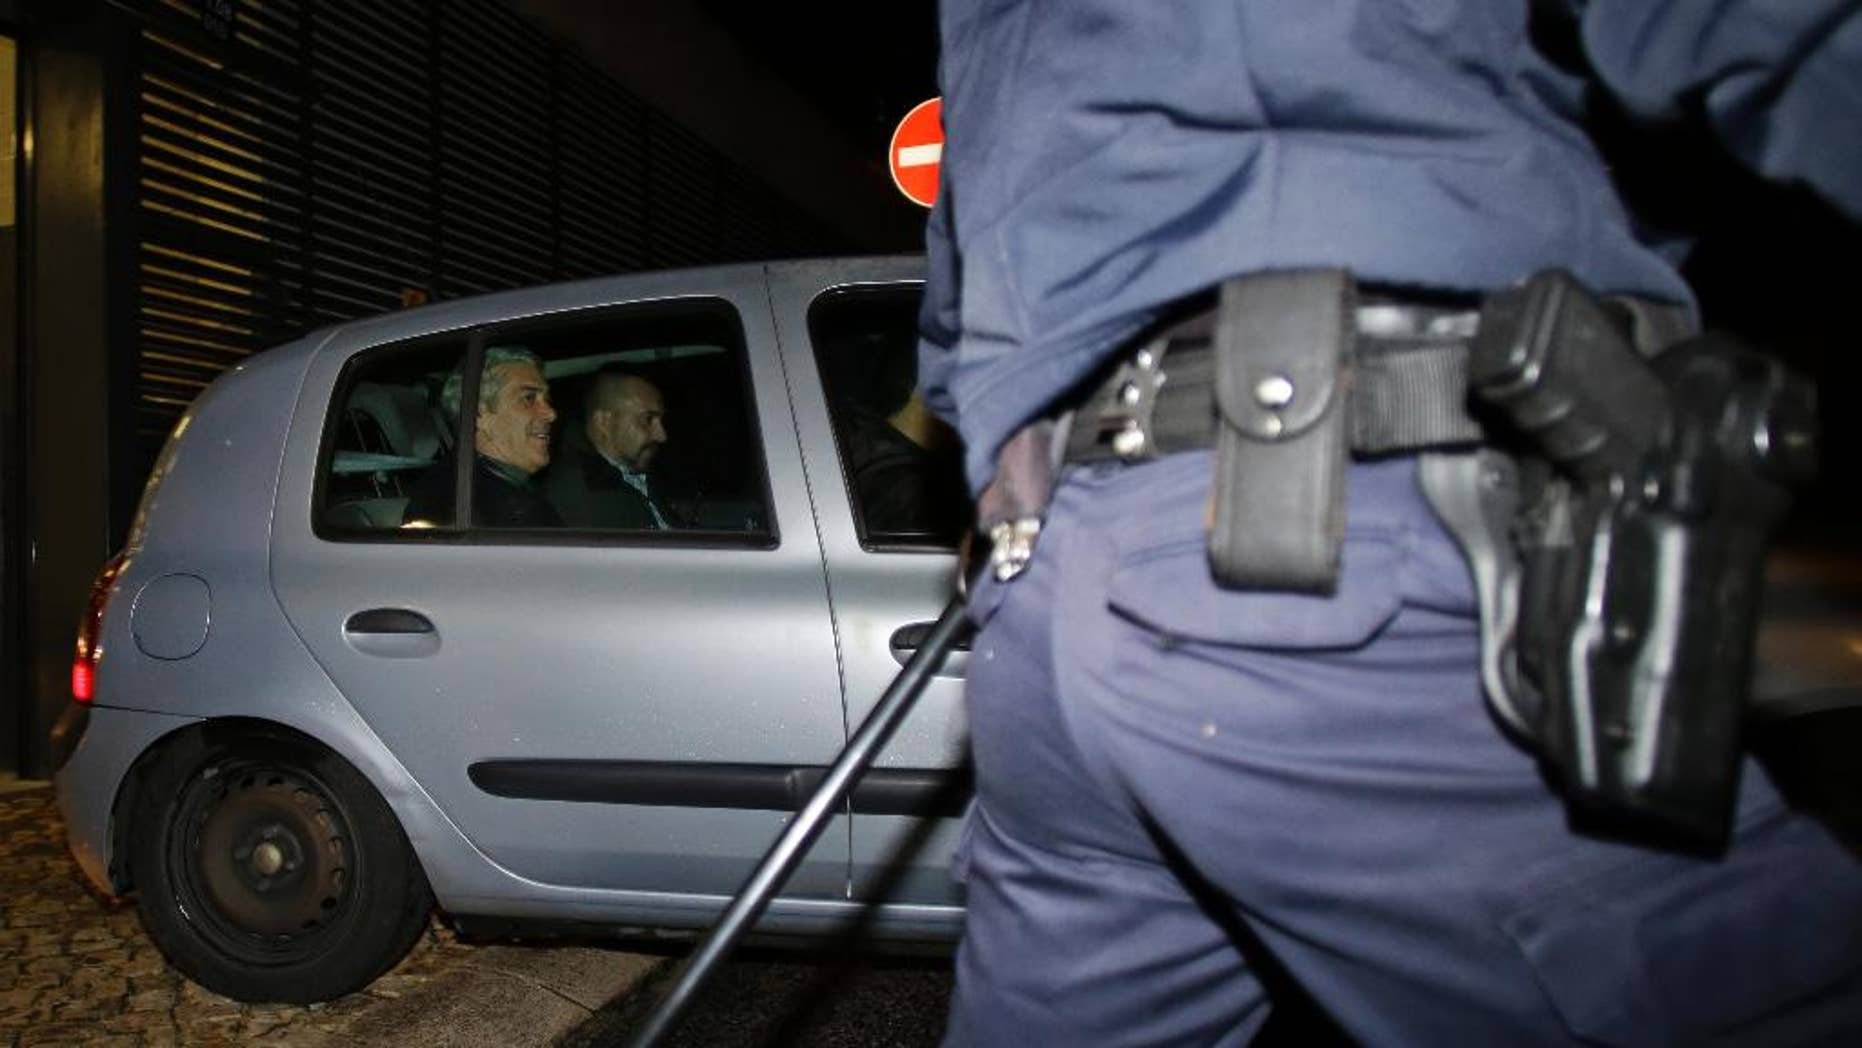 Portugal's former Prime Minister Jose Socrates, at left in the back seat of the car, leaves a court in a Portuguese police car after being questioned, in Lisbon, Sunday, Nov. 23, 2014.  Socrates, who was Portugal's center-left Socialist Prime Minister from 2005 to 2011, was due in a Lisbon court Sunday for a closed-door interrogation, deciding whether he should answer charges of alleged corruption, money-laundering and tax fraud. (AP Photo/Francisco Seco)